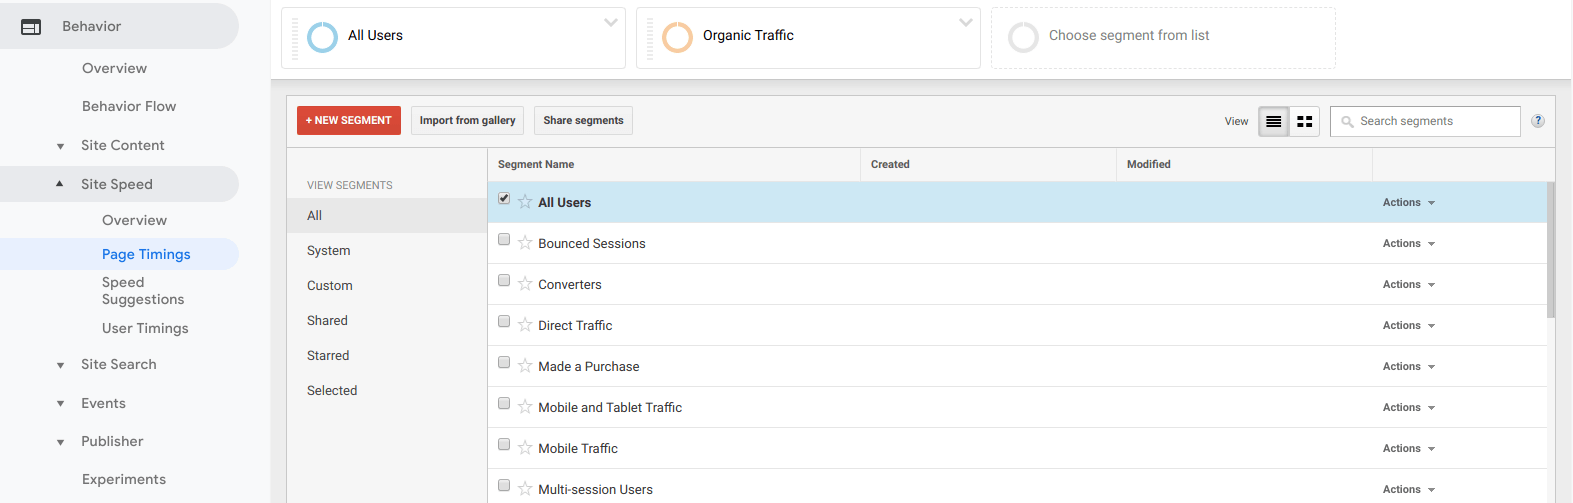 Adding the organic segment to other reports in Google Analytics